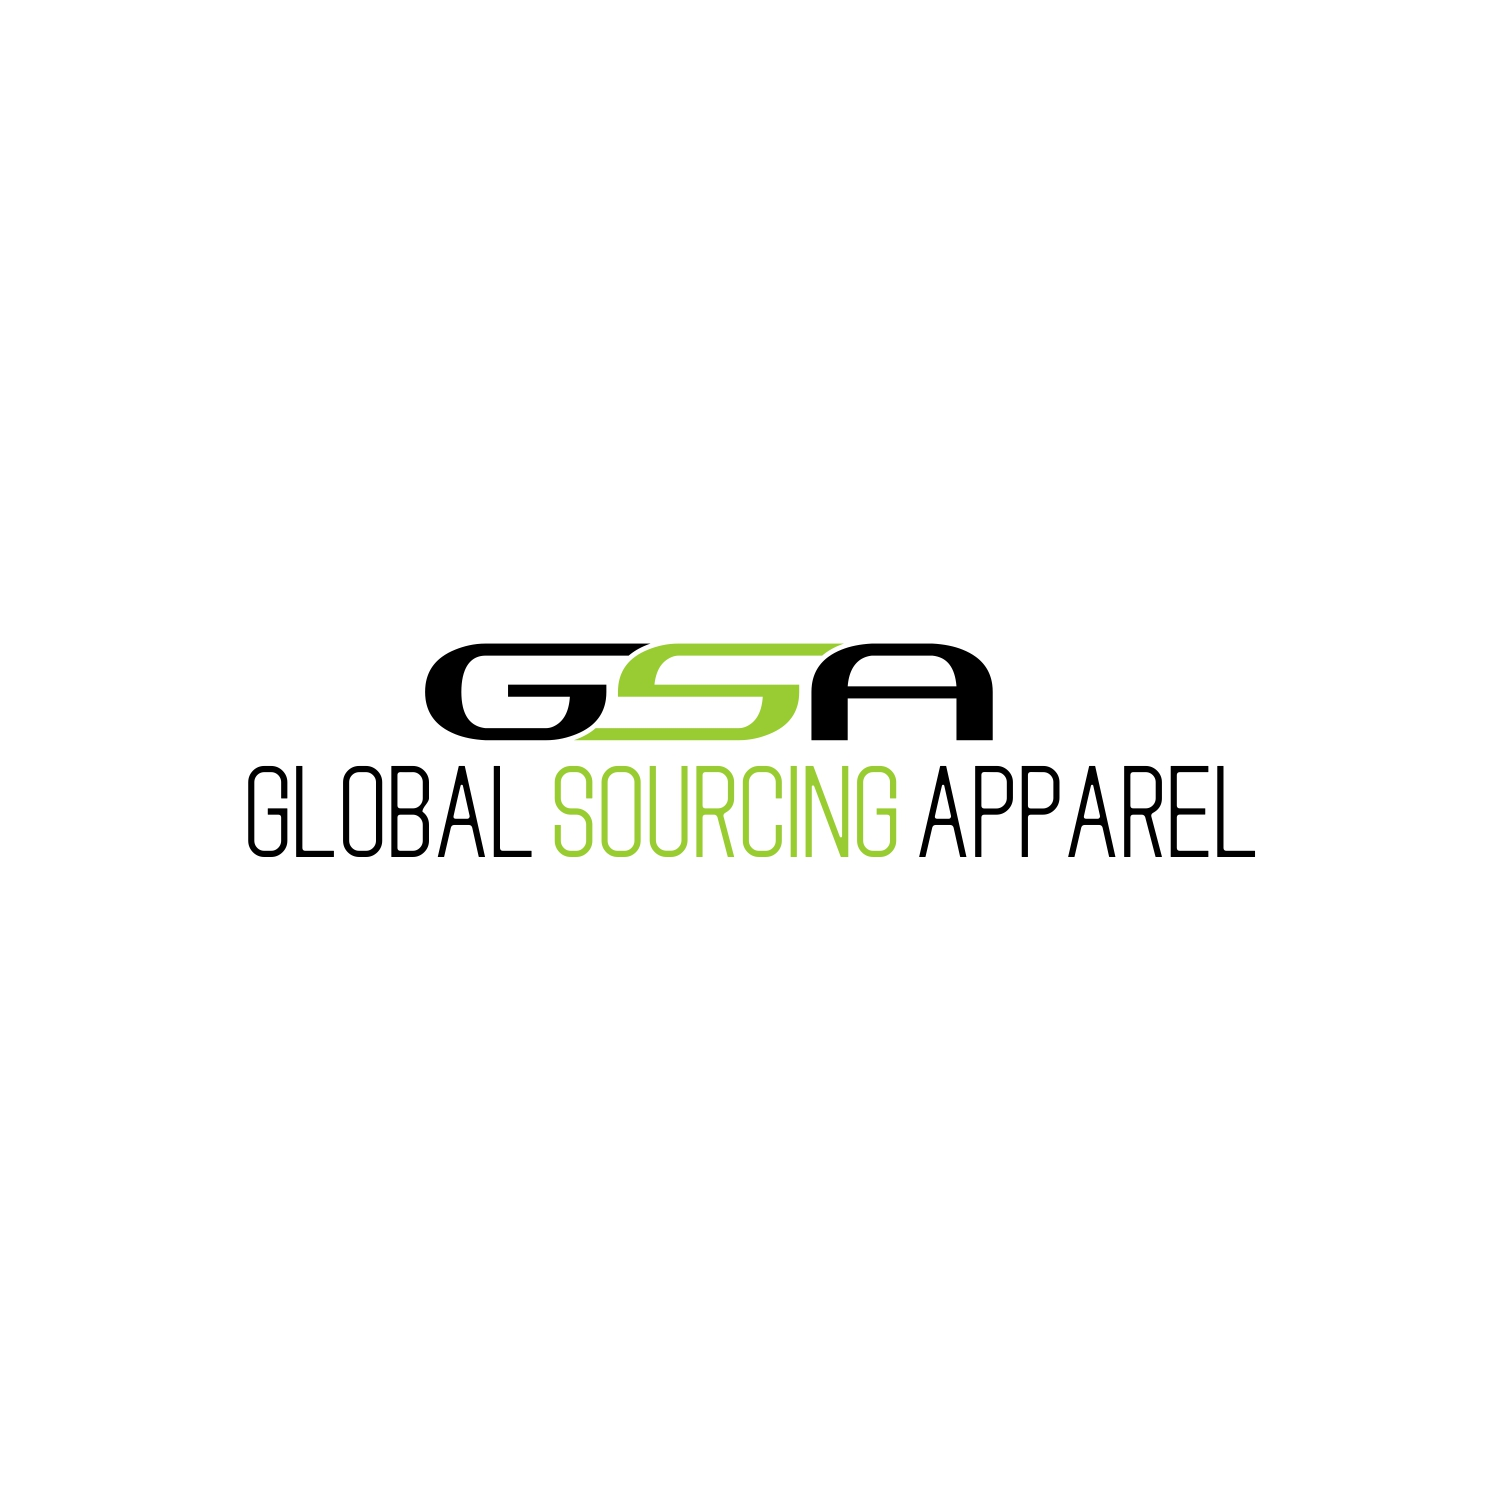 Logo Design by martinz - Entry No. 43 in the Logo Design Contest Fun Logo Design for Global Sourcing Apparel.